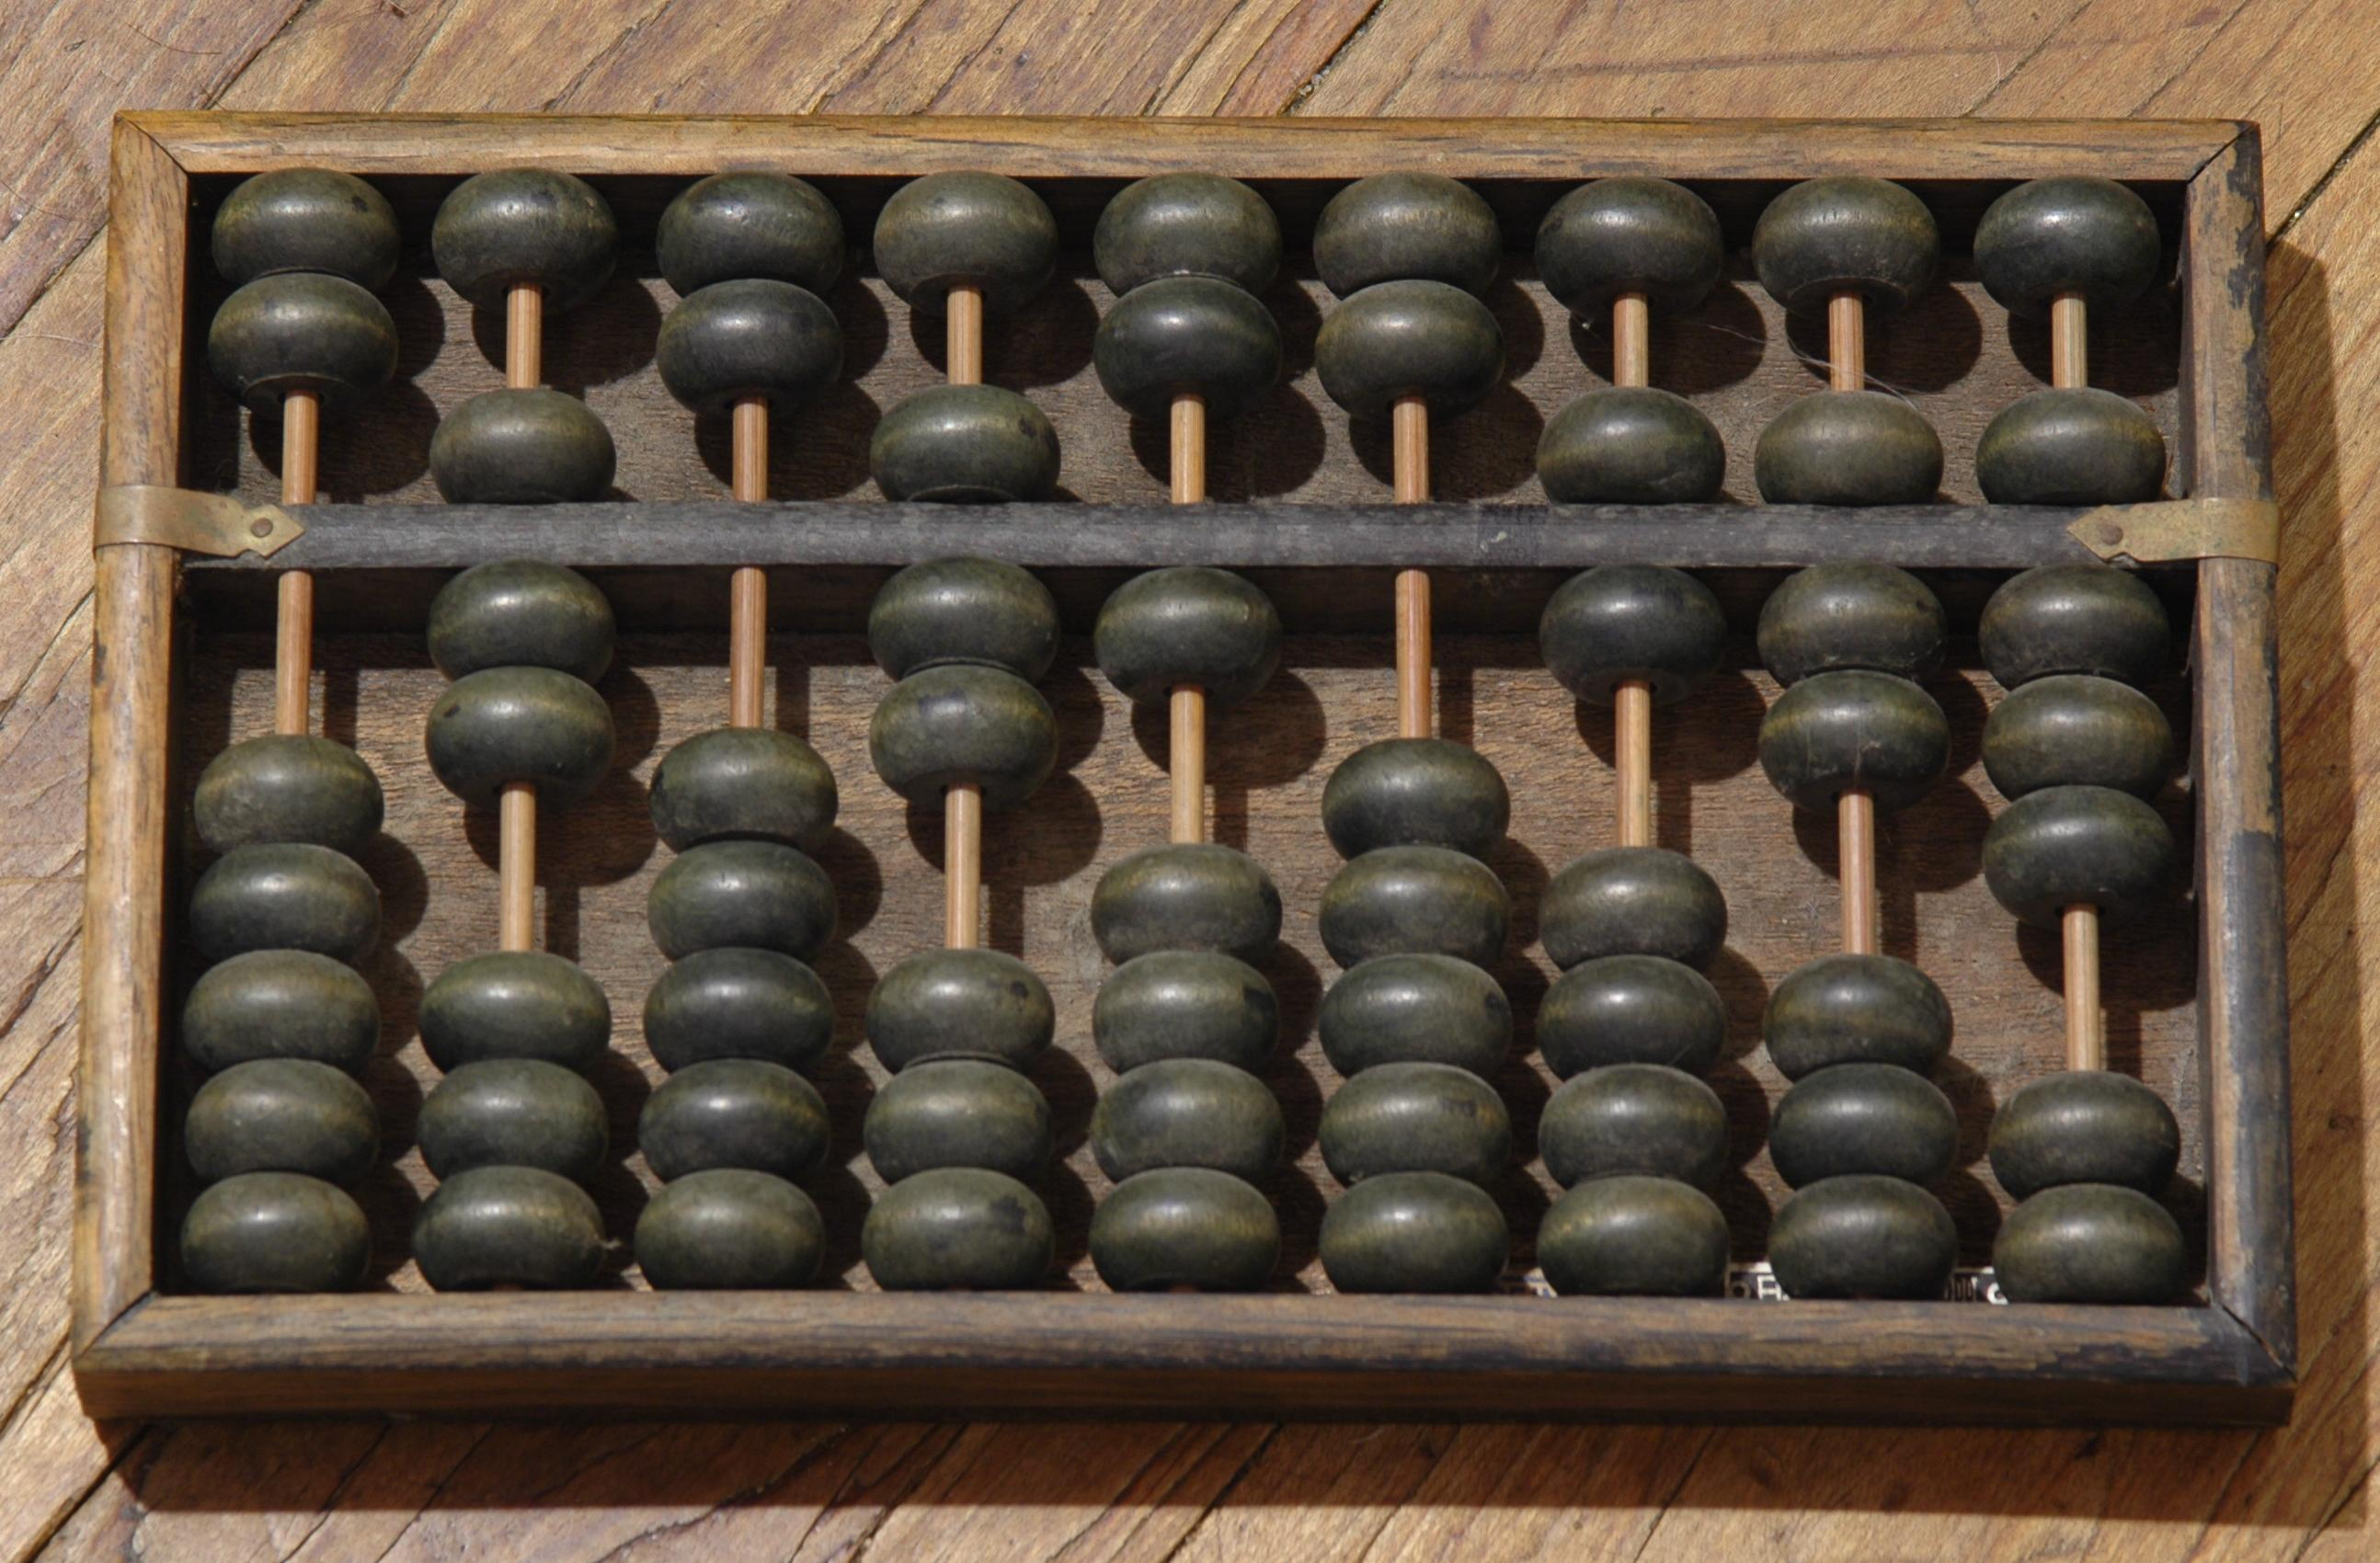 File:Chinese-abacus.jpg - Wikipedia, the free encyclopedia